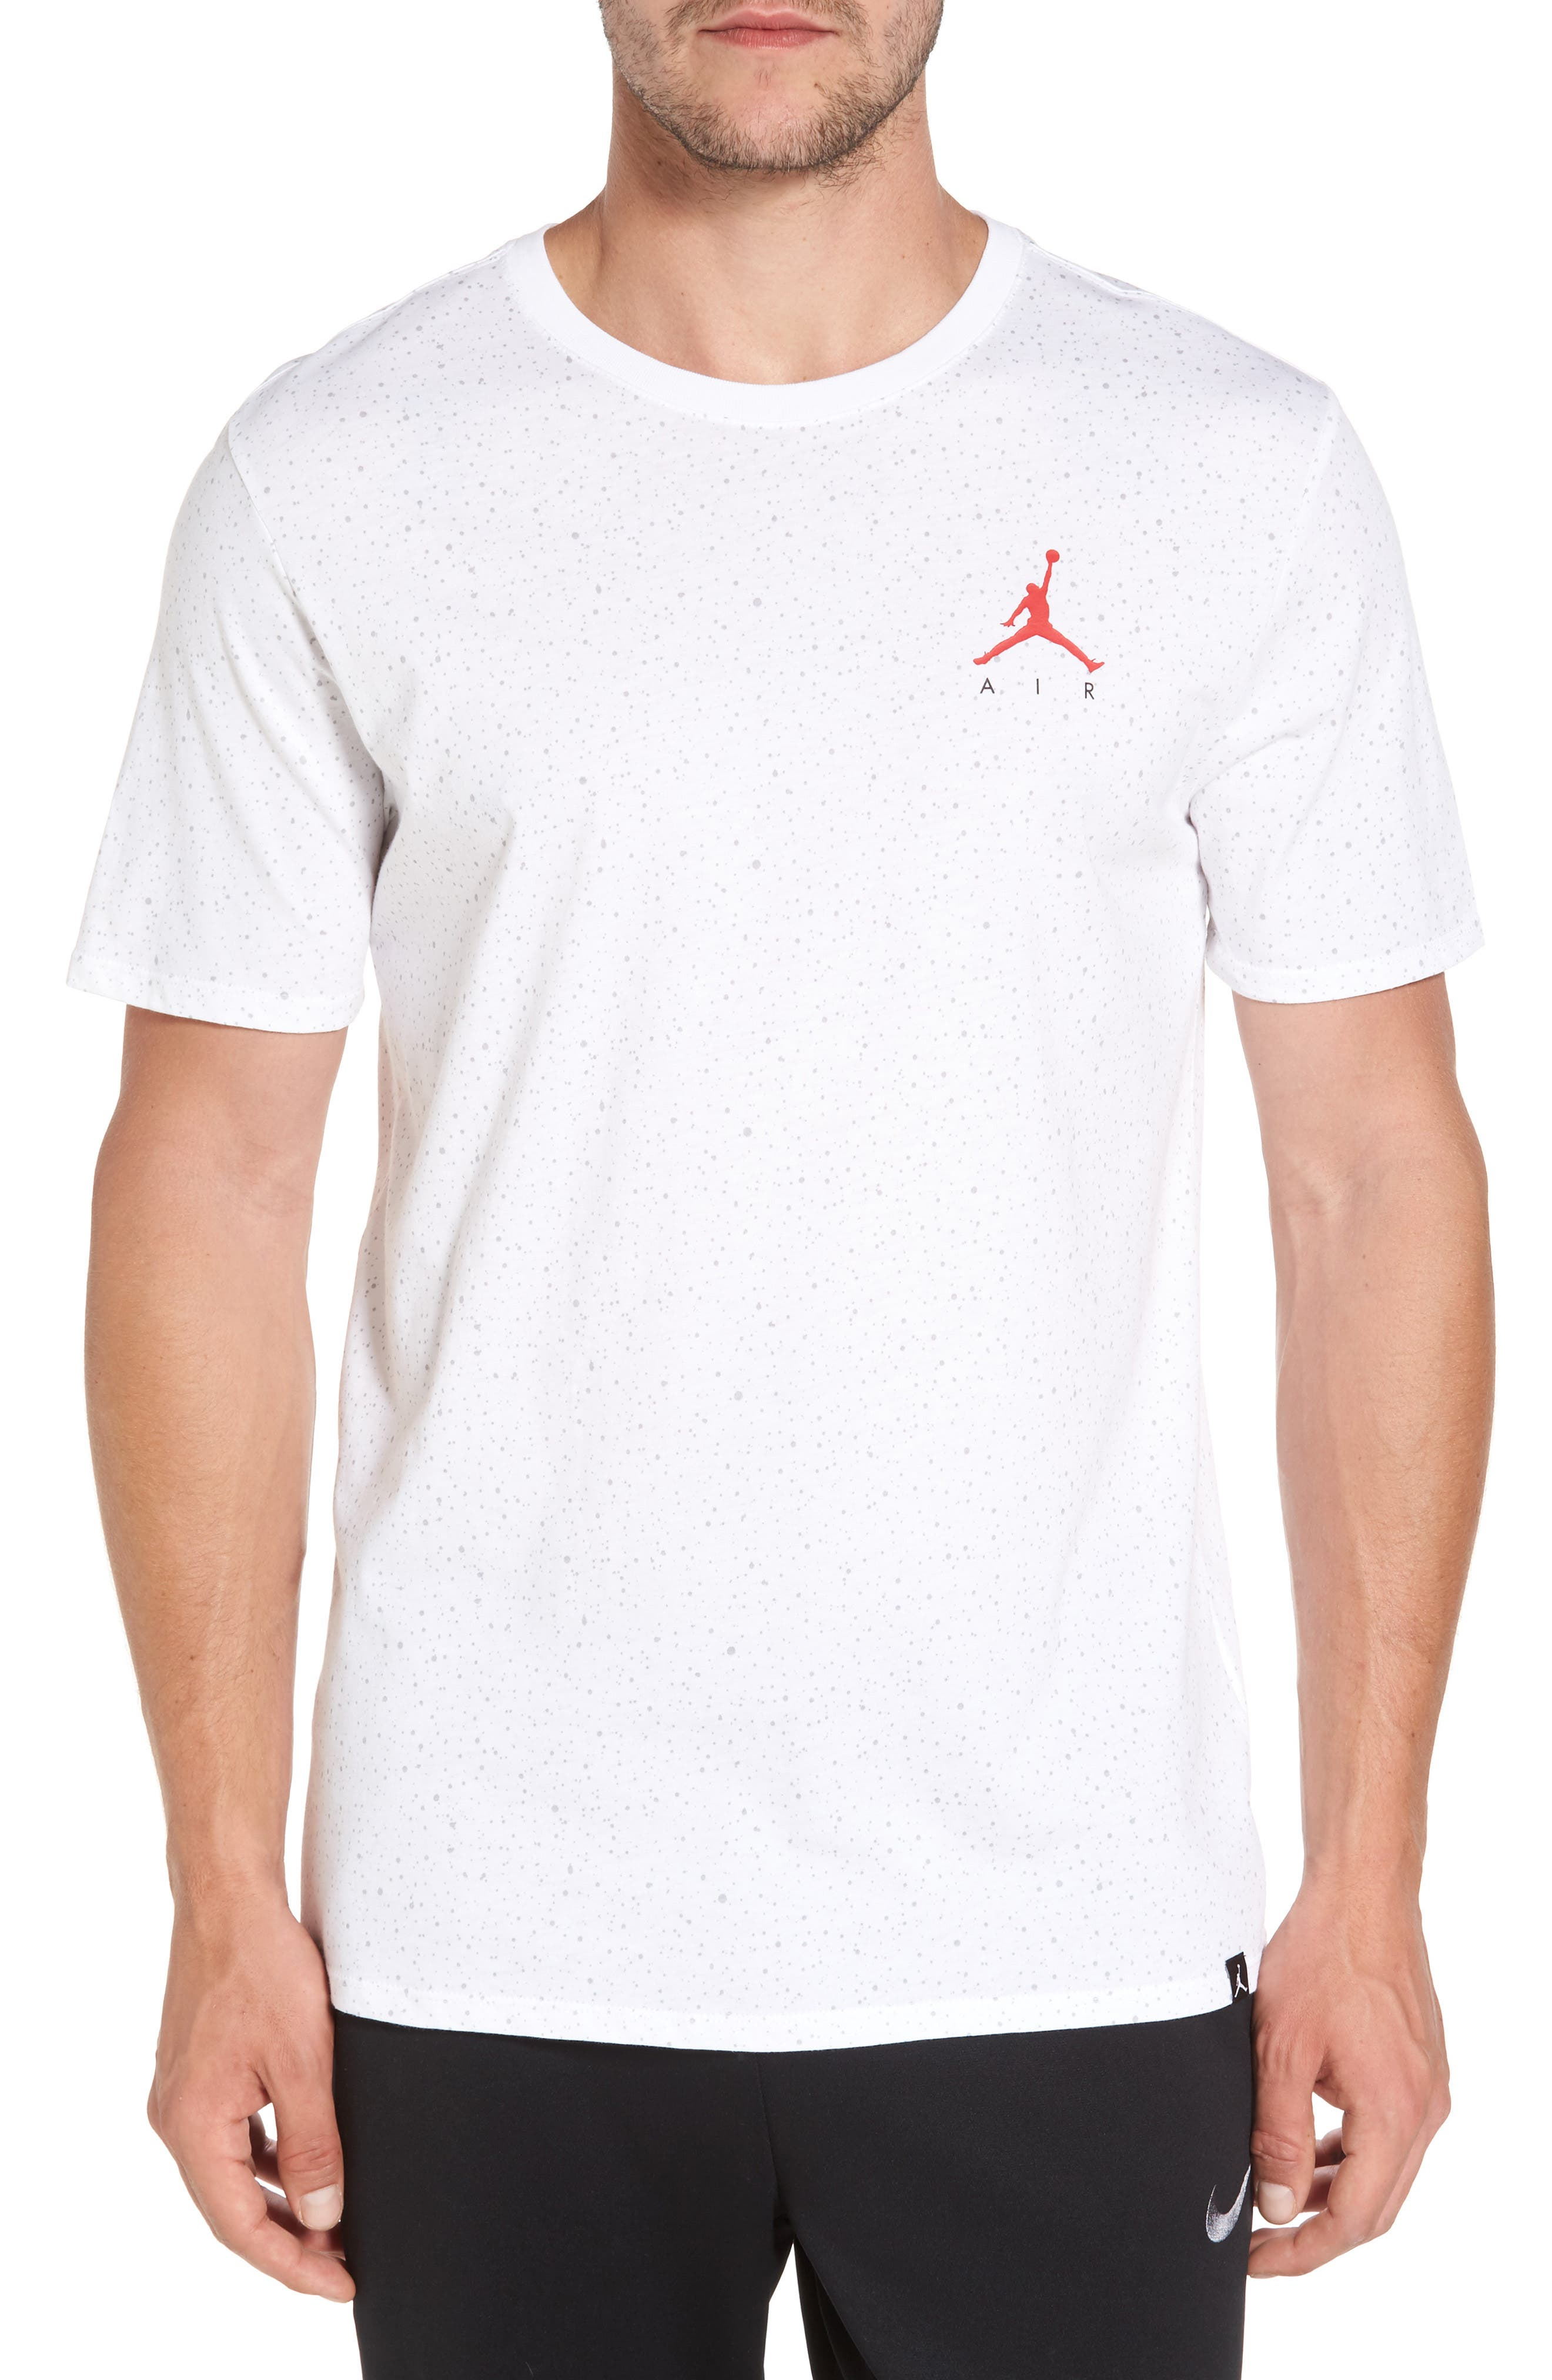 Sportswear Speckle T-Shirt,                             Main thumbnail 1, color,                             White/ University Red